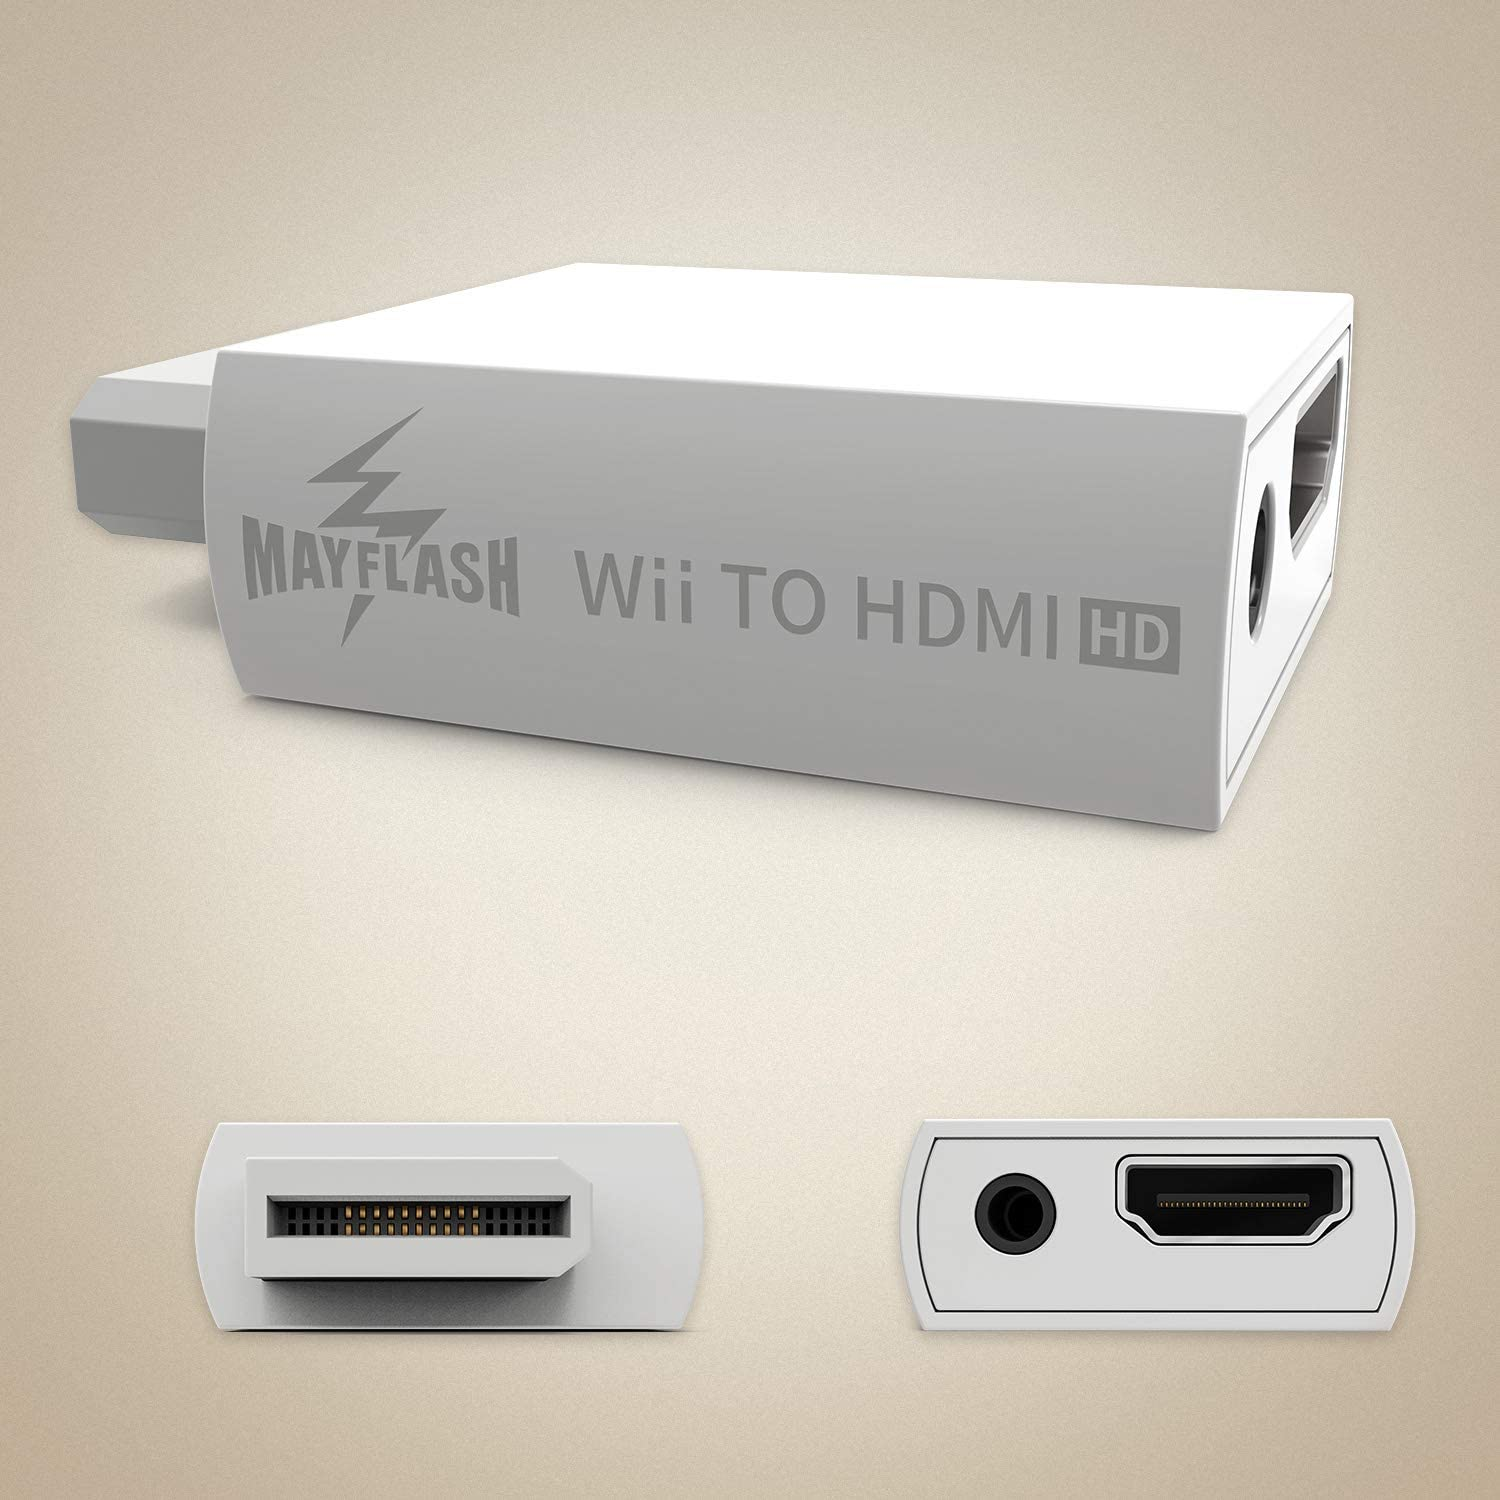 MAYFLASH Wii to HDMI Converter 1080P for Full HD Device, Wii HDMI Adapter with 3,5mm Audio Jack&HDMI Output Compatible with Nintendo Wii, Wii U, HDTV, Monitor-Supports All Wii Display Modes 720P, NTS